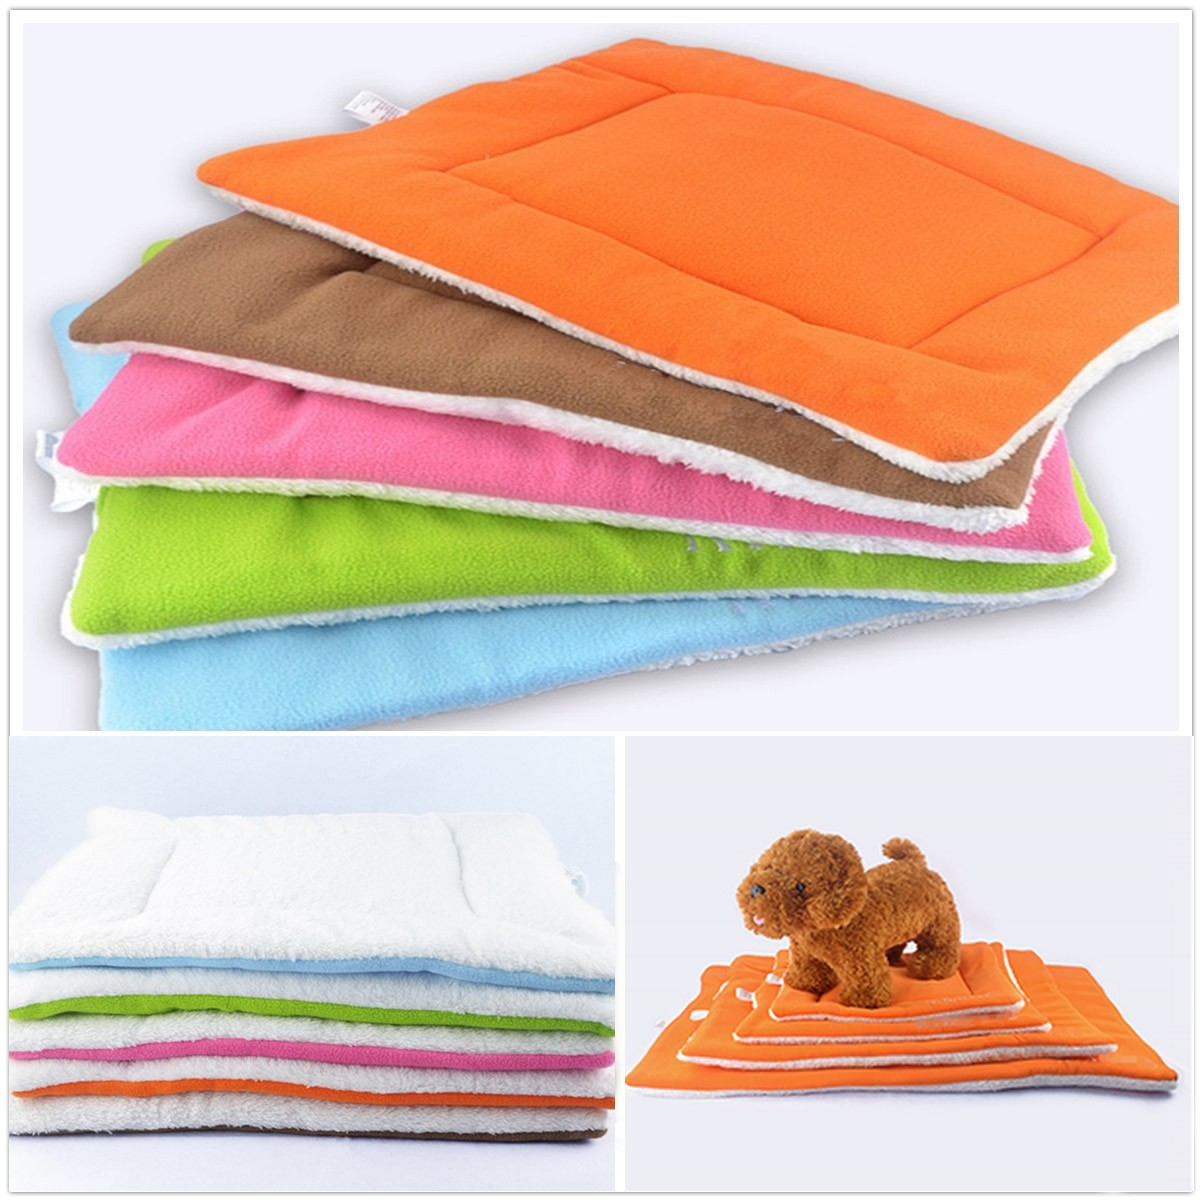 1-Pack Dog Cat Pet Beds Washable Soft Comfortable Warm Bed Mat Padding House Sleep Crate Fleece Kennel Cushion Pet Blanket Bed